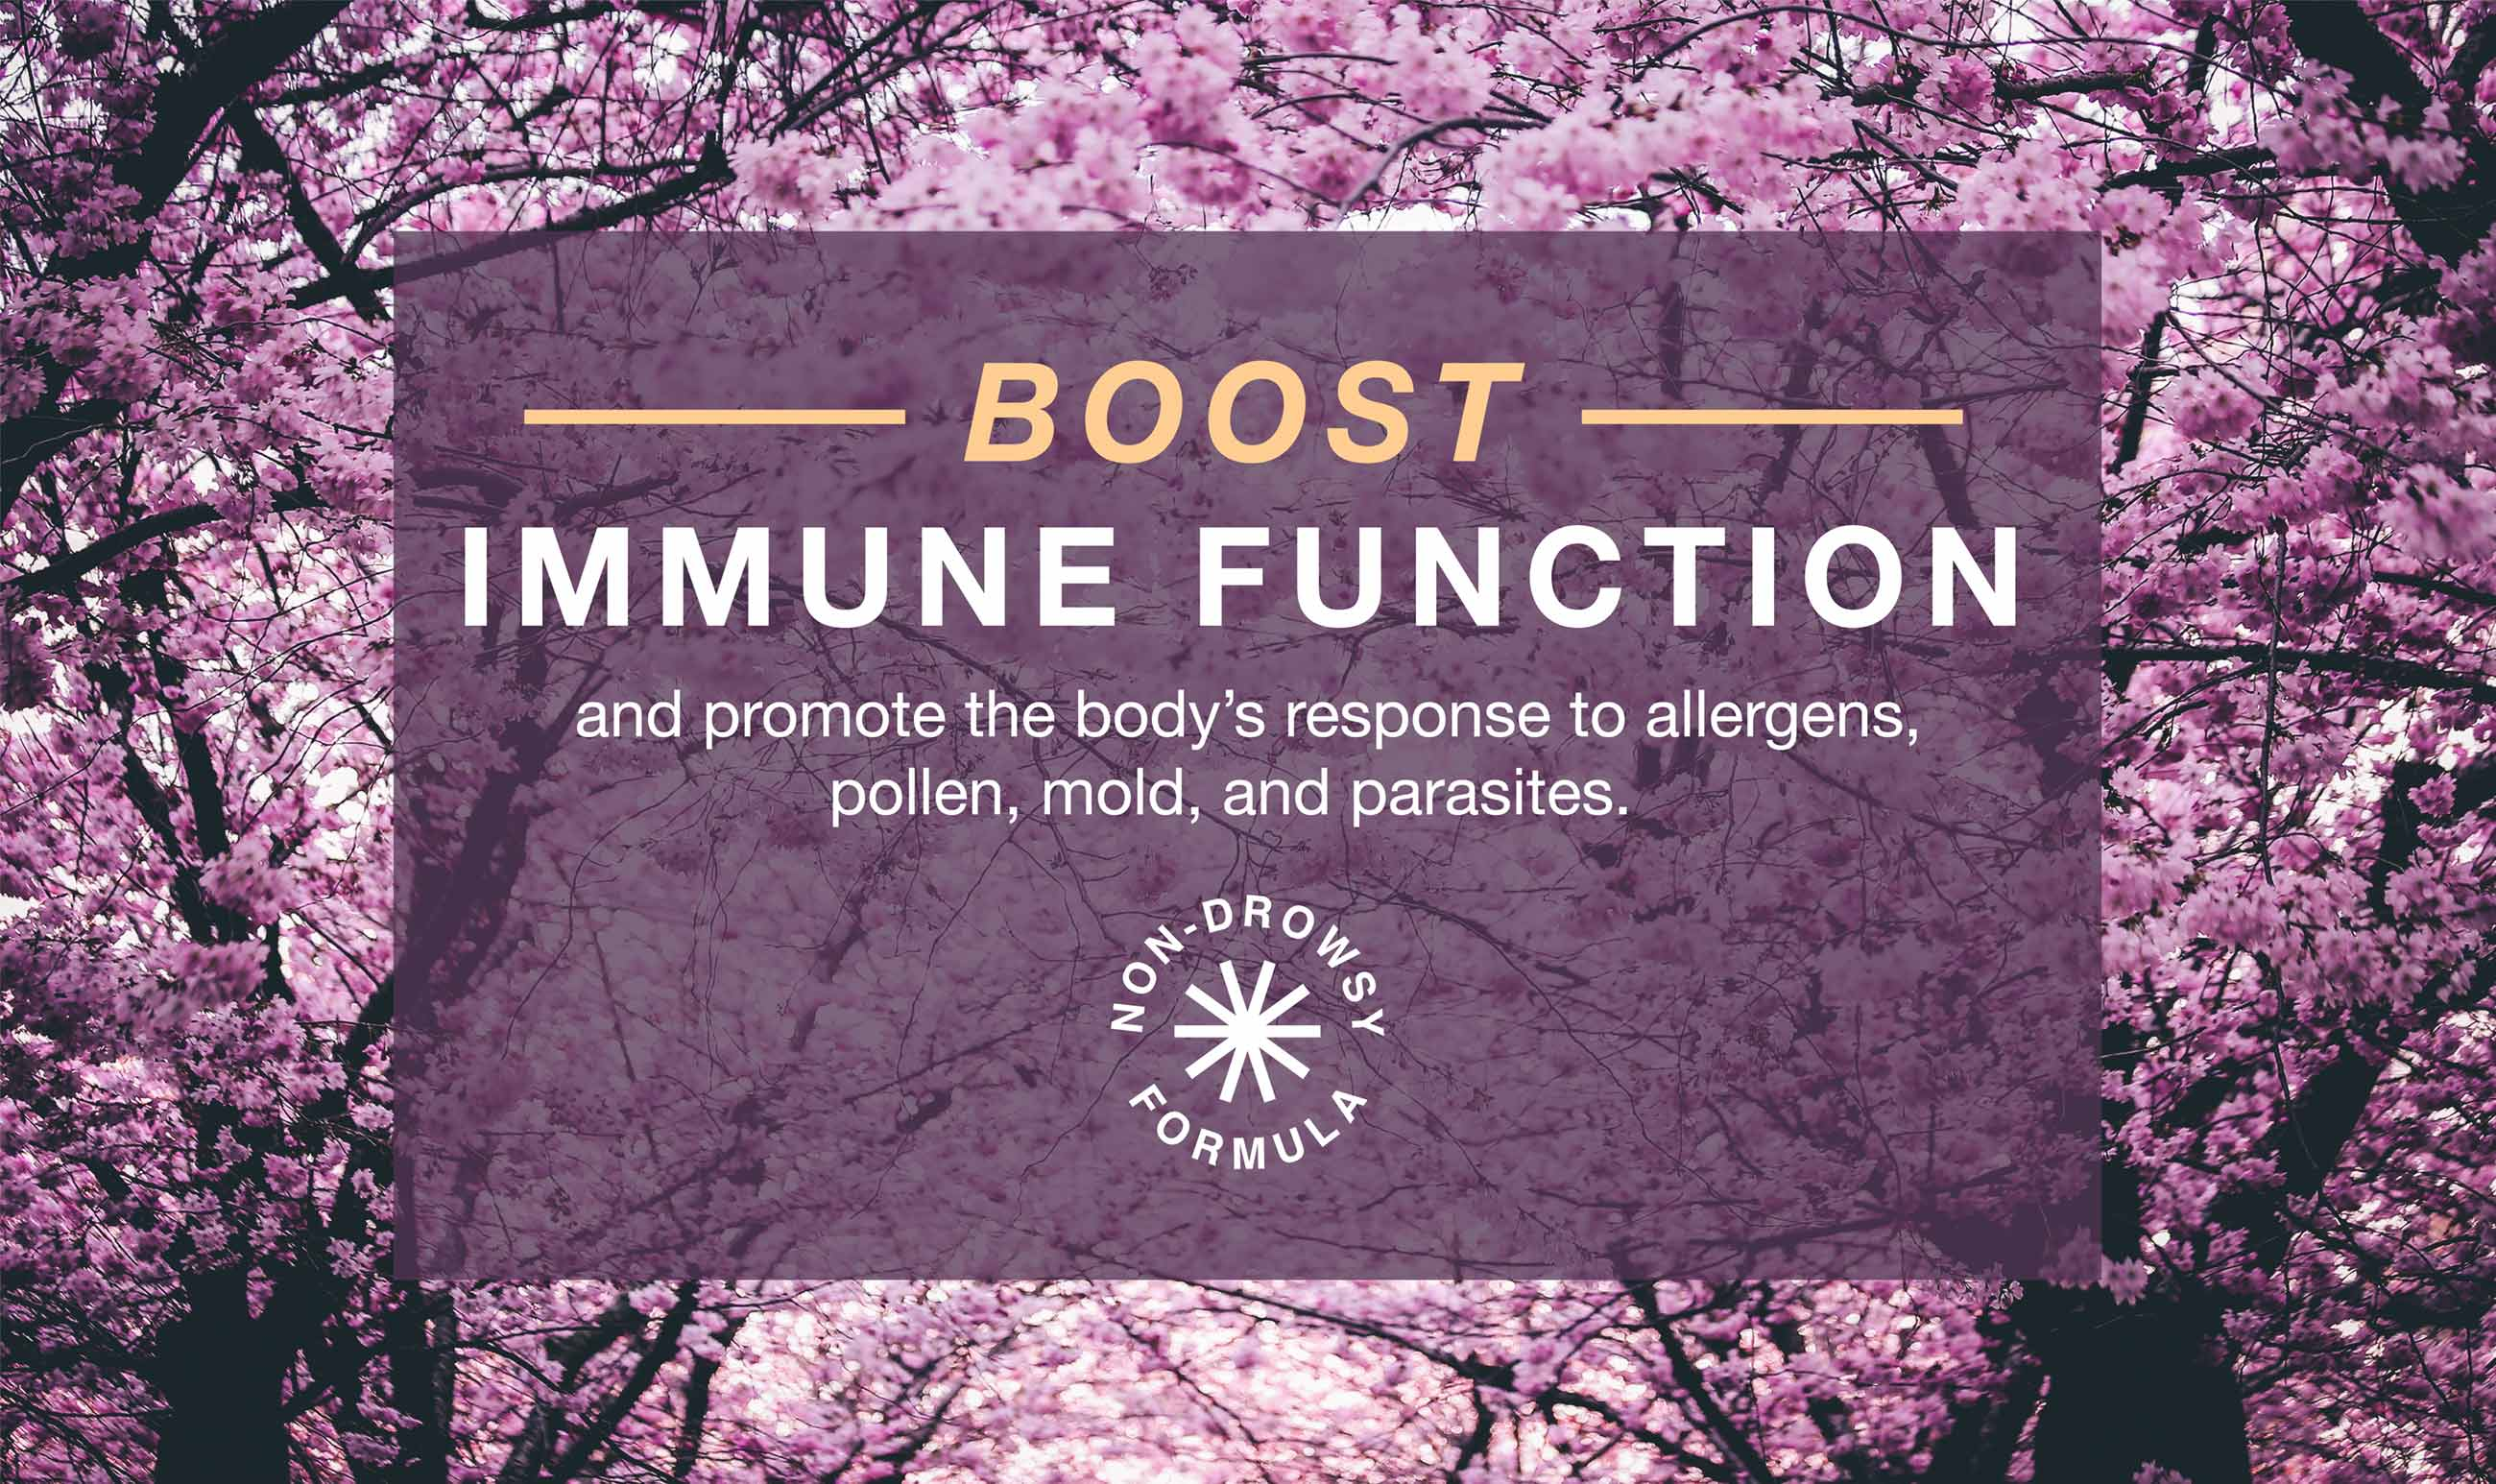 Non-drowsy formula to boost immune function and promote the body's response to allergens, pollen, mold, and parasites.